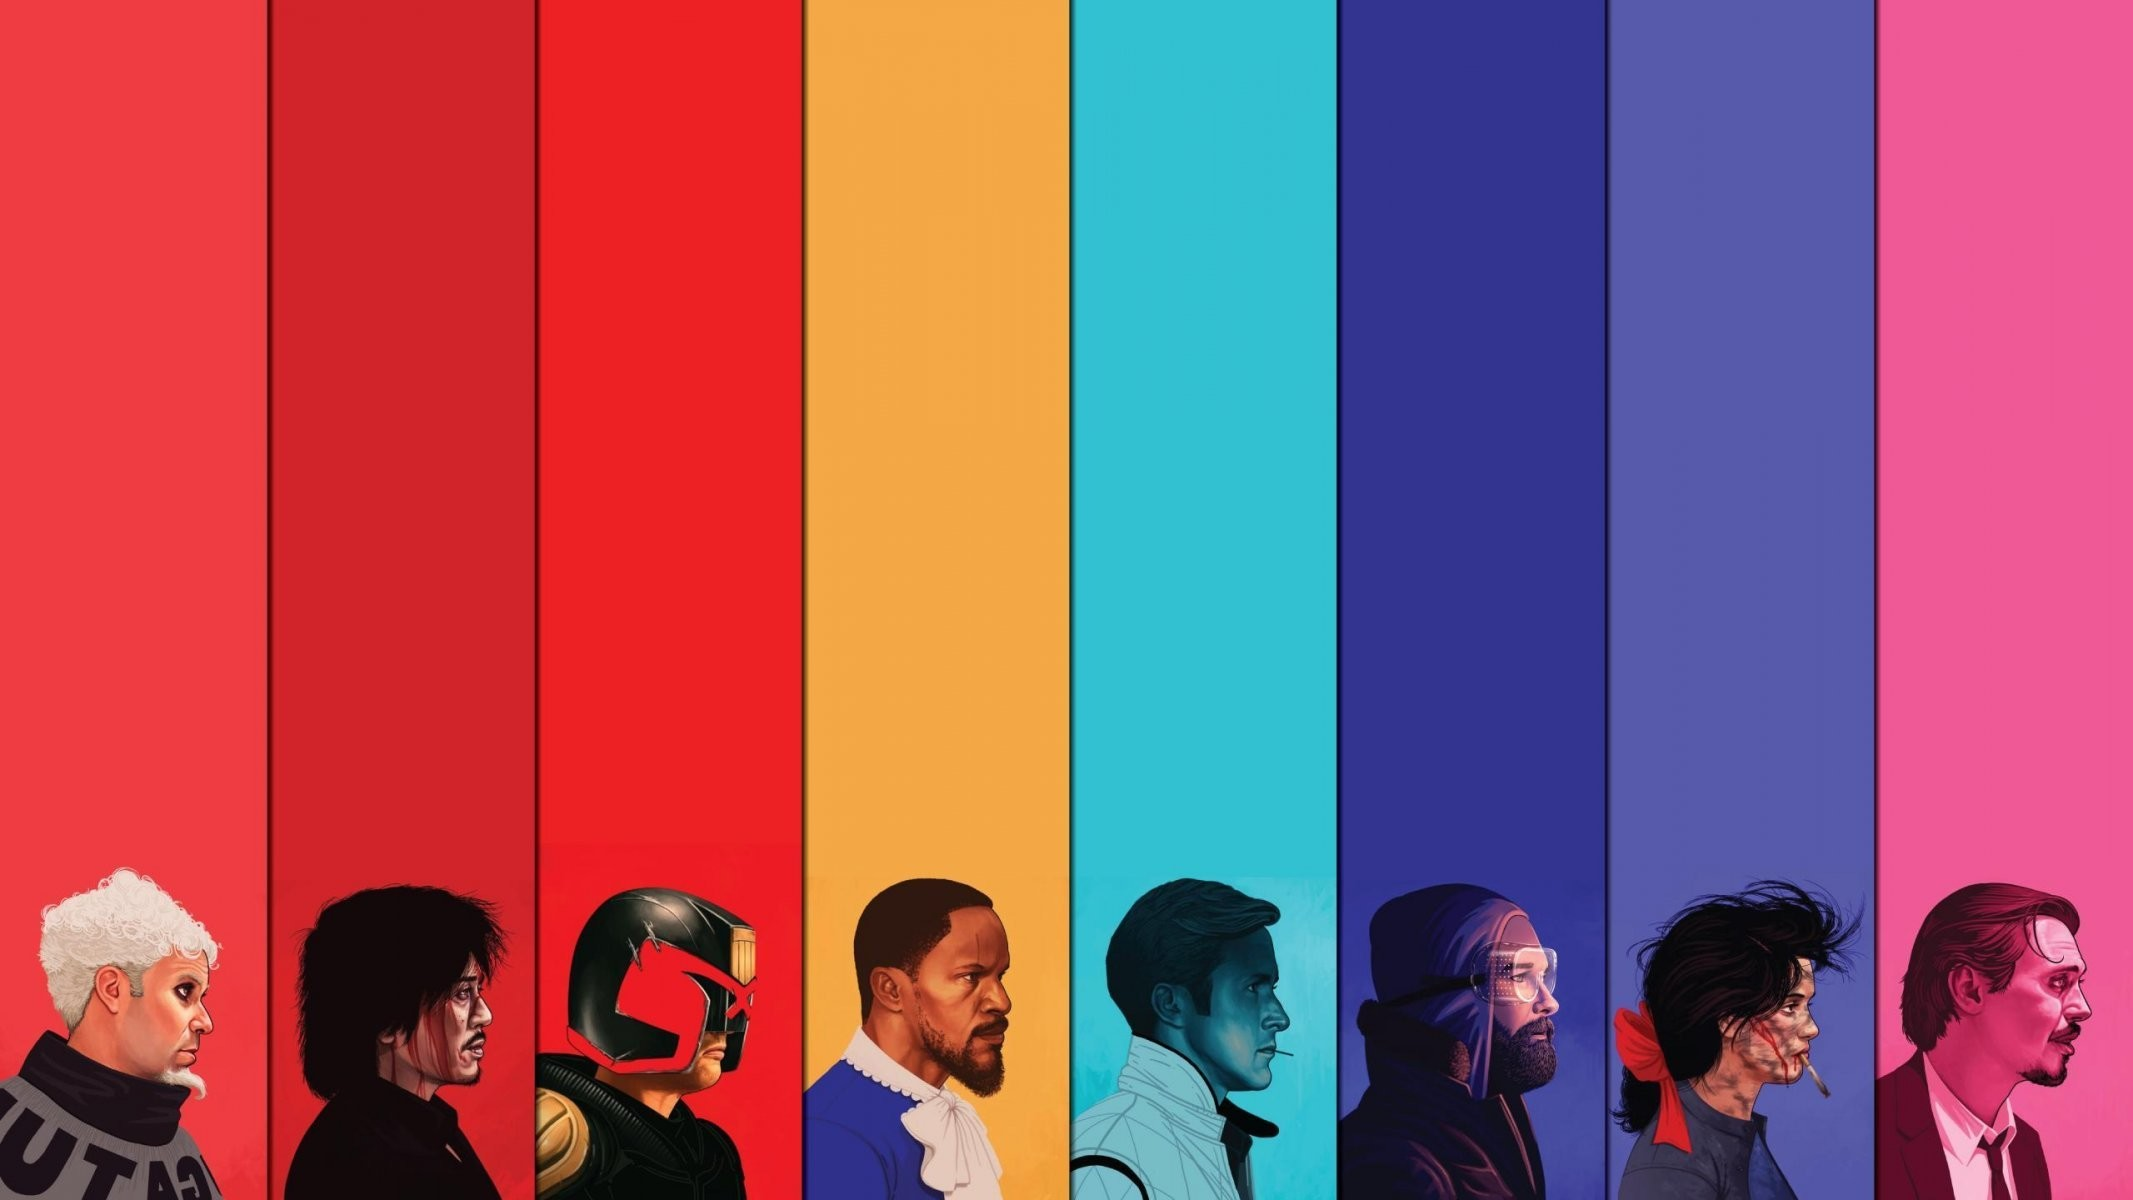 mike mitchell zoolander oldboy judge dredd django unchained drive the thing  heathers reservoir dogs portrait